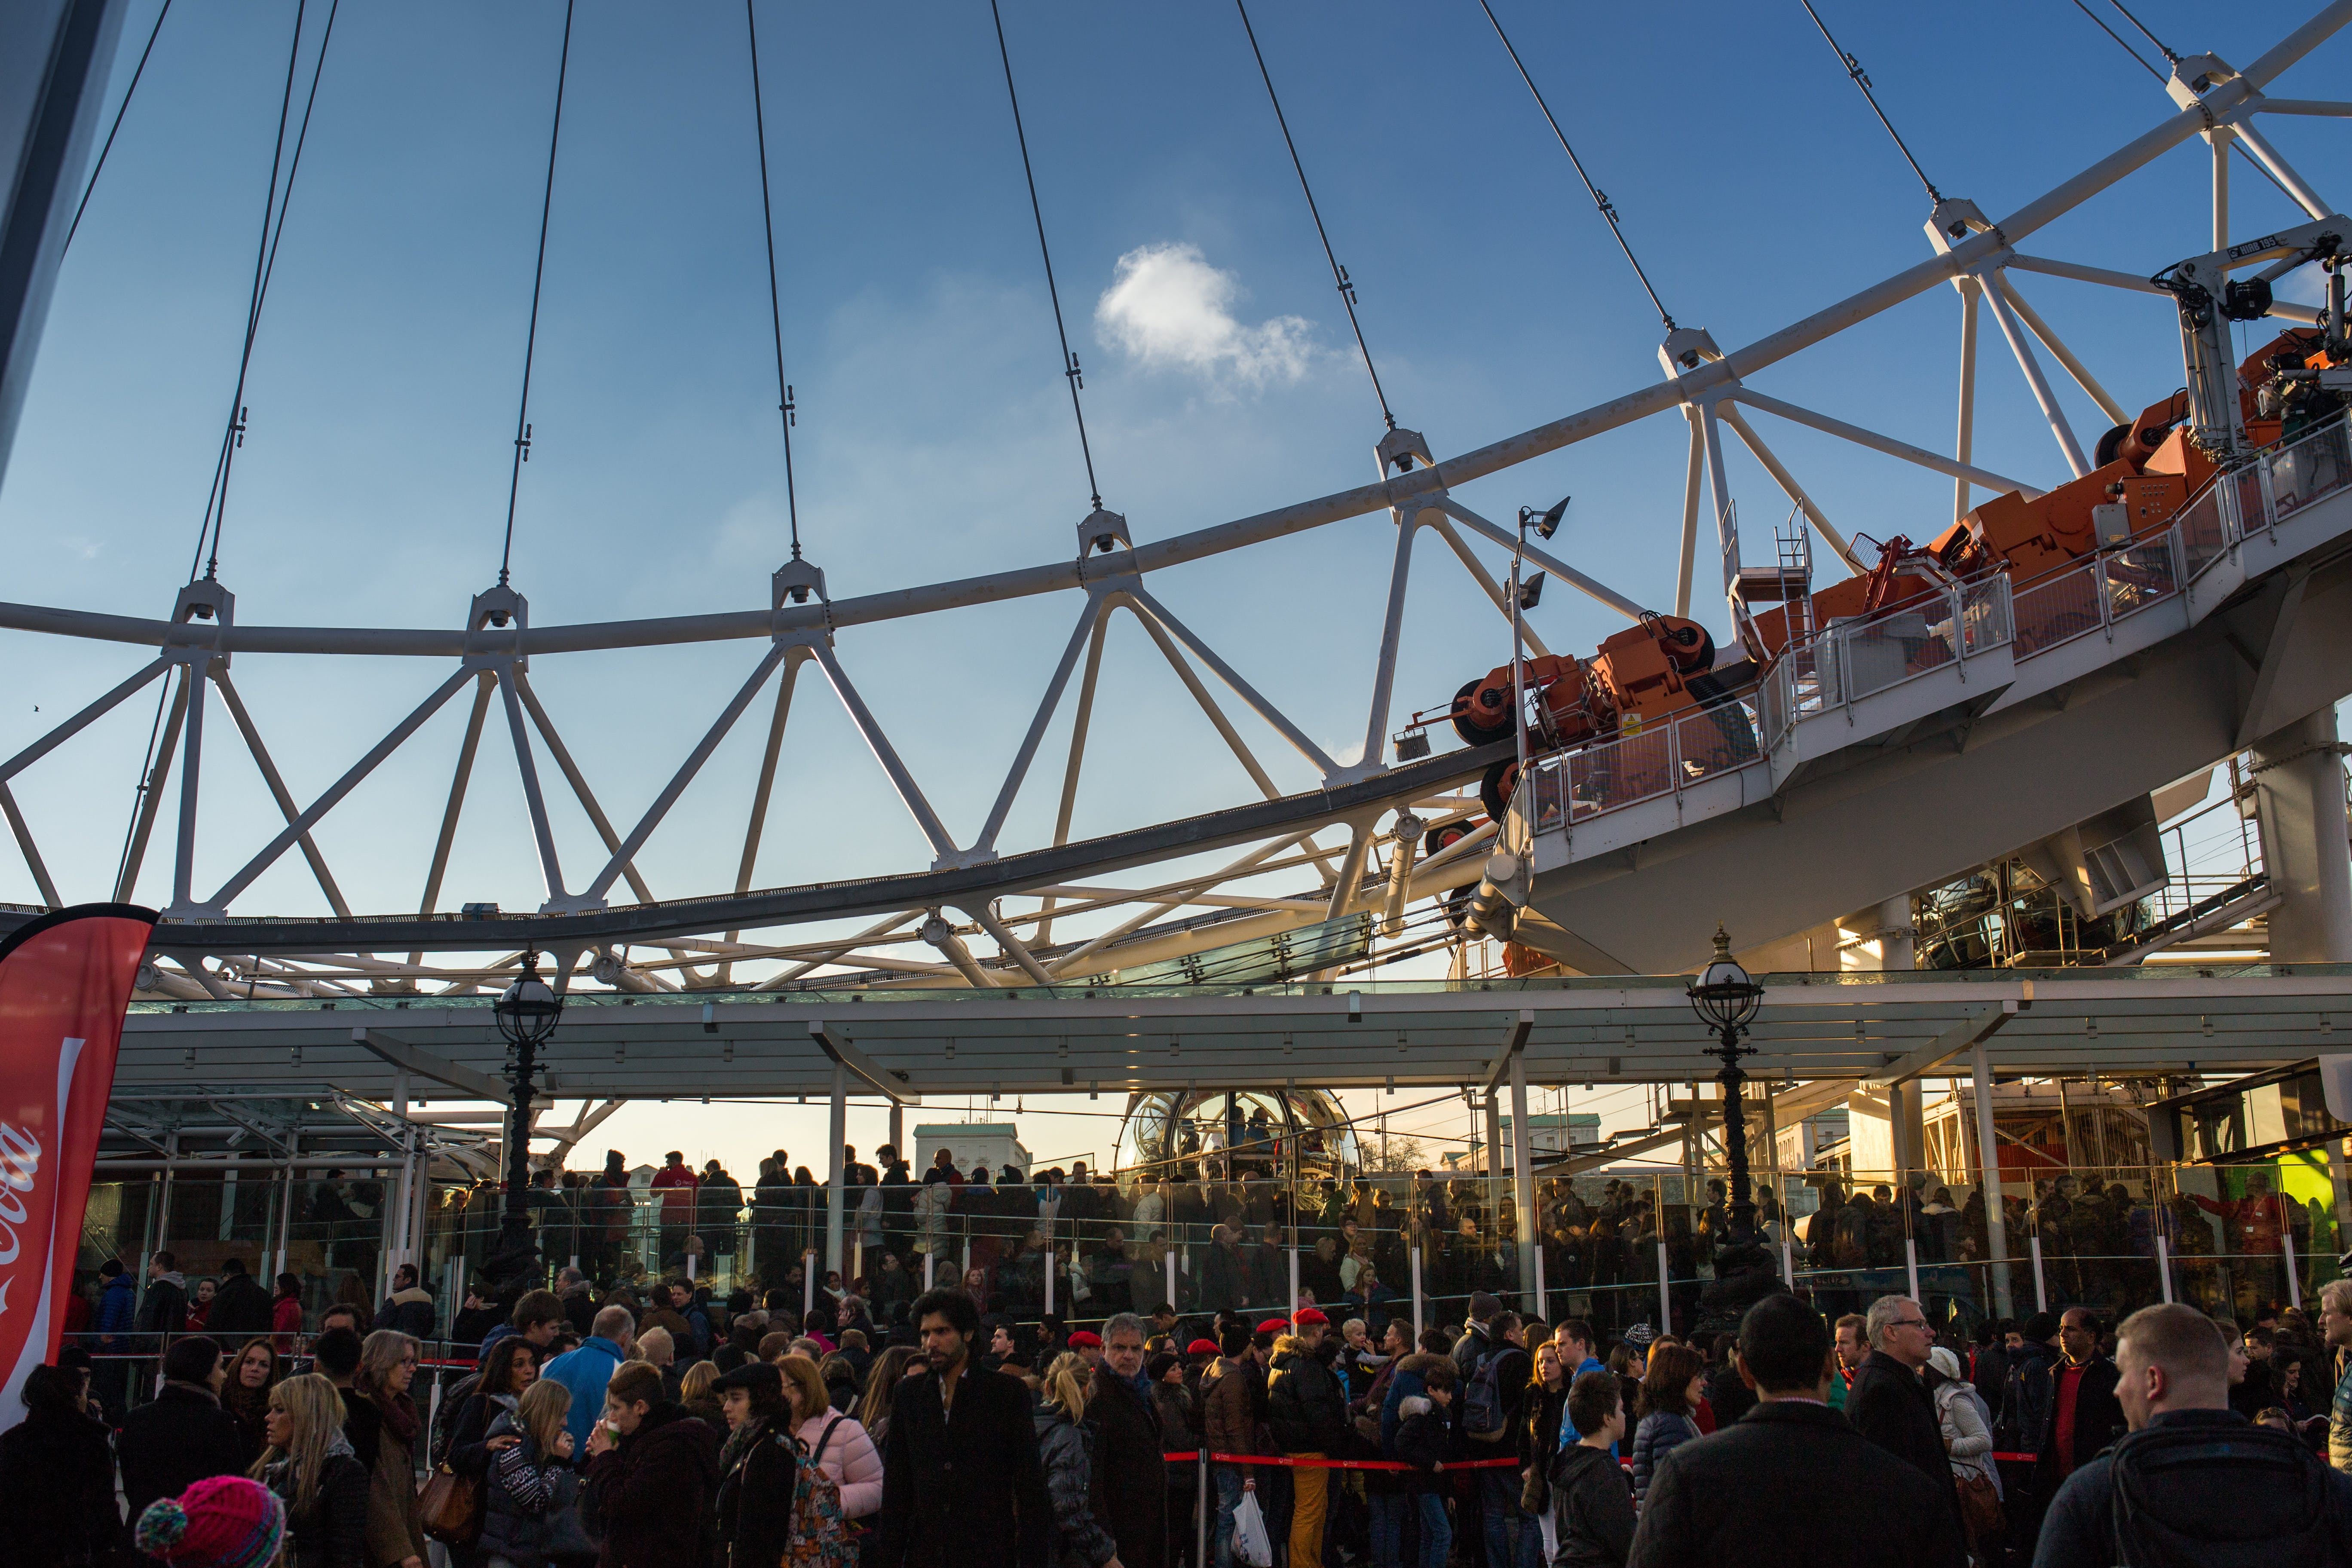 Red White Roller Coaster Under White Cloud and Blue Sky during Daytime